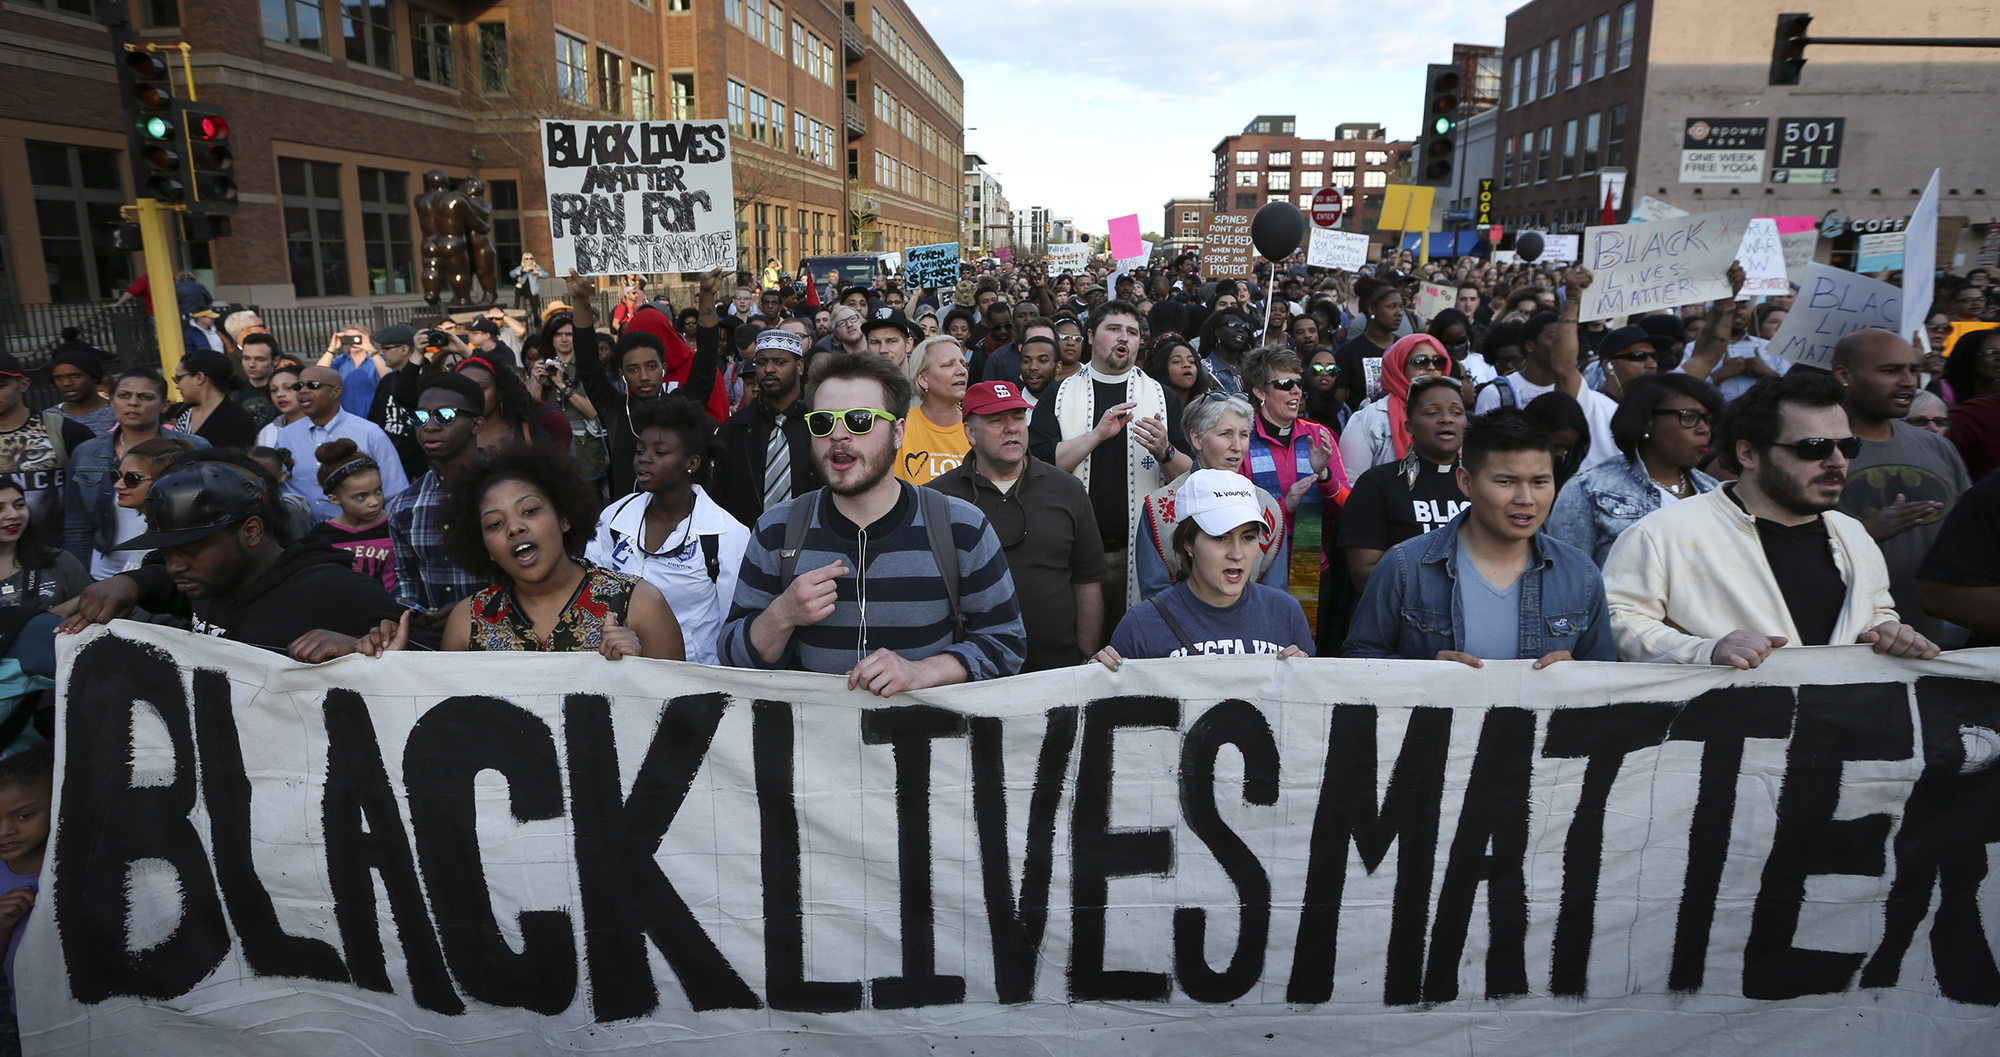 Black Lives Matter protests have gripped the nation this summer